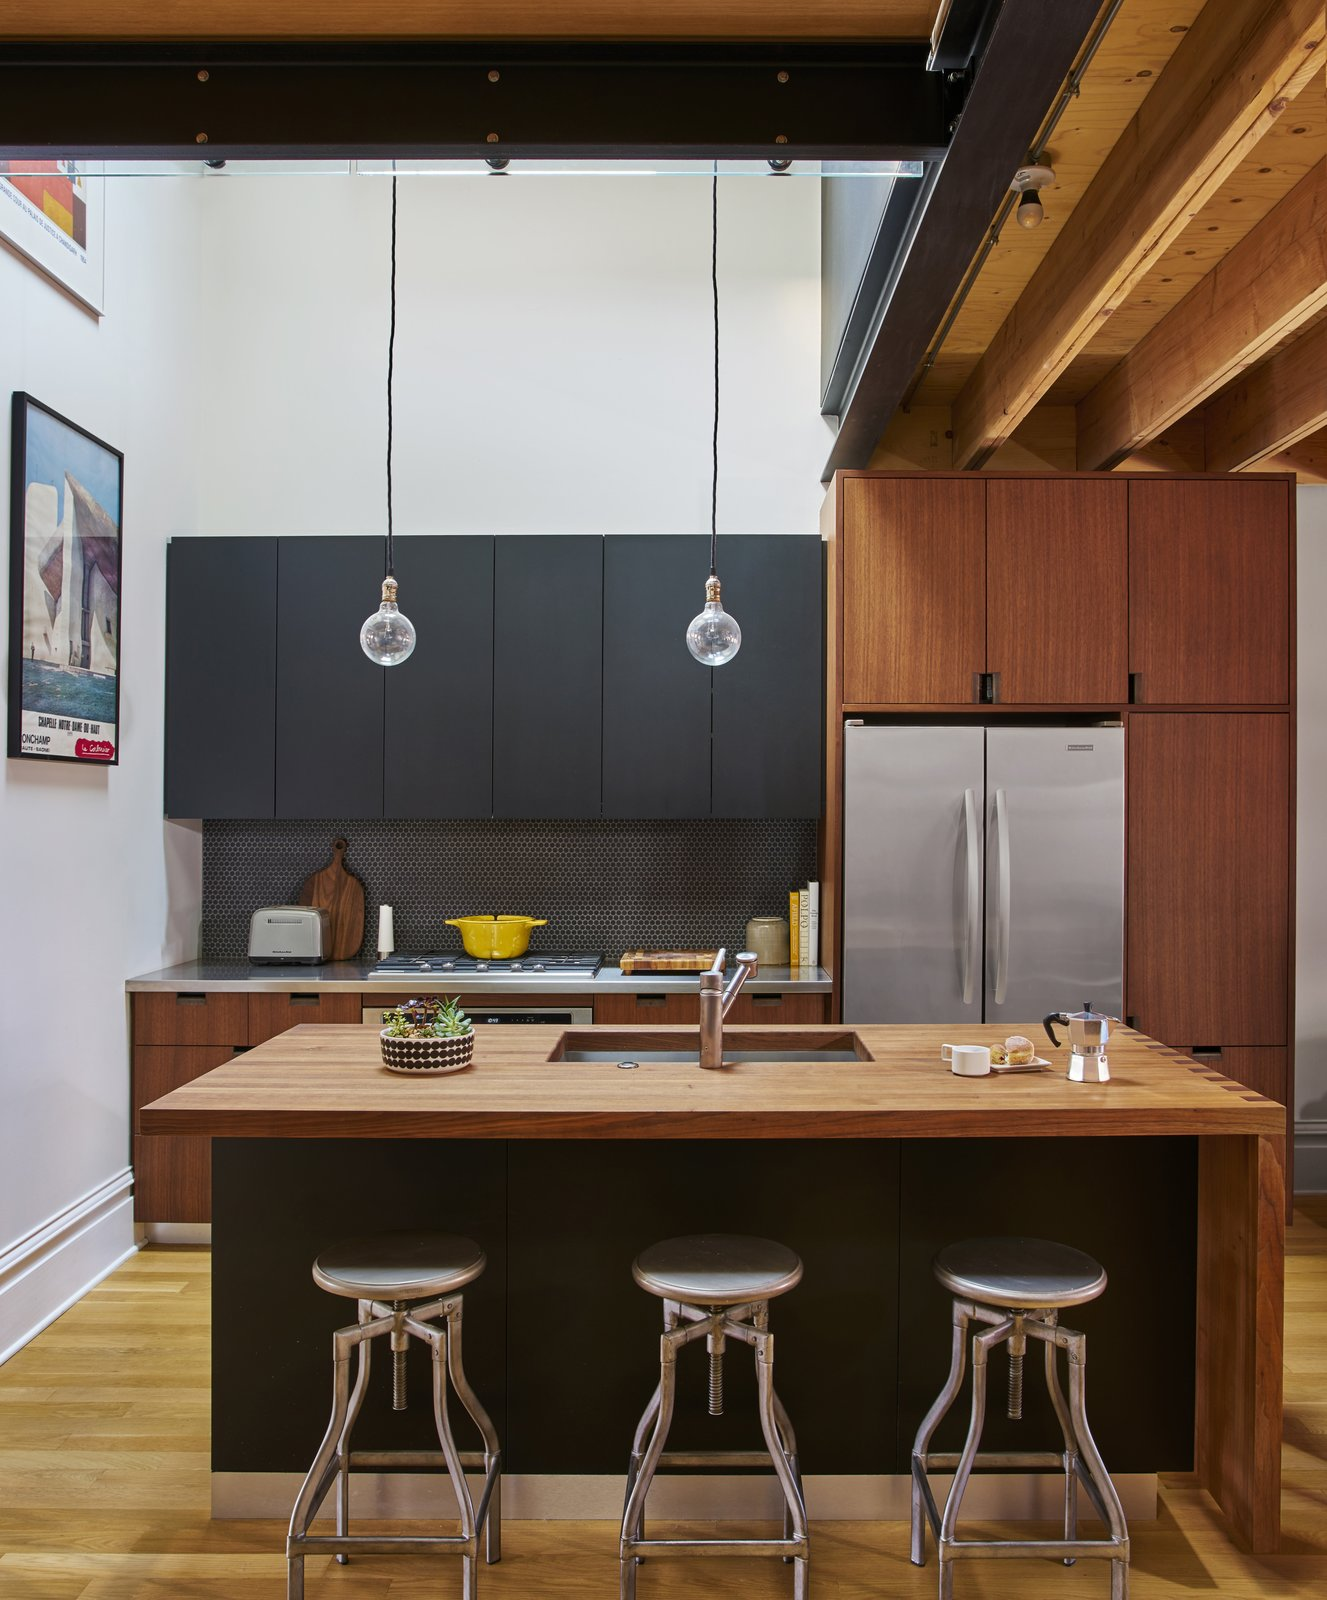 The kitchen features Schoolhouse Electric & Supply Co. pendant lights and Crate and Barrel stools. The woodblock island's leaf, at the far right, can lift upwards to expand the table when work or hosting demands it. The faucet is from KWC.  Photo 3 of 8 in A Chicago Renovation Taps Into its Attic to Almost Double its Square Footage